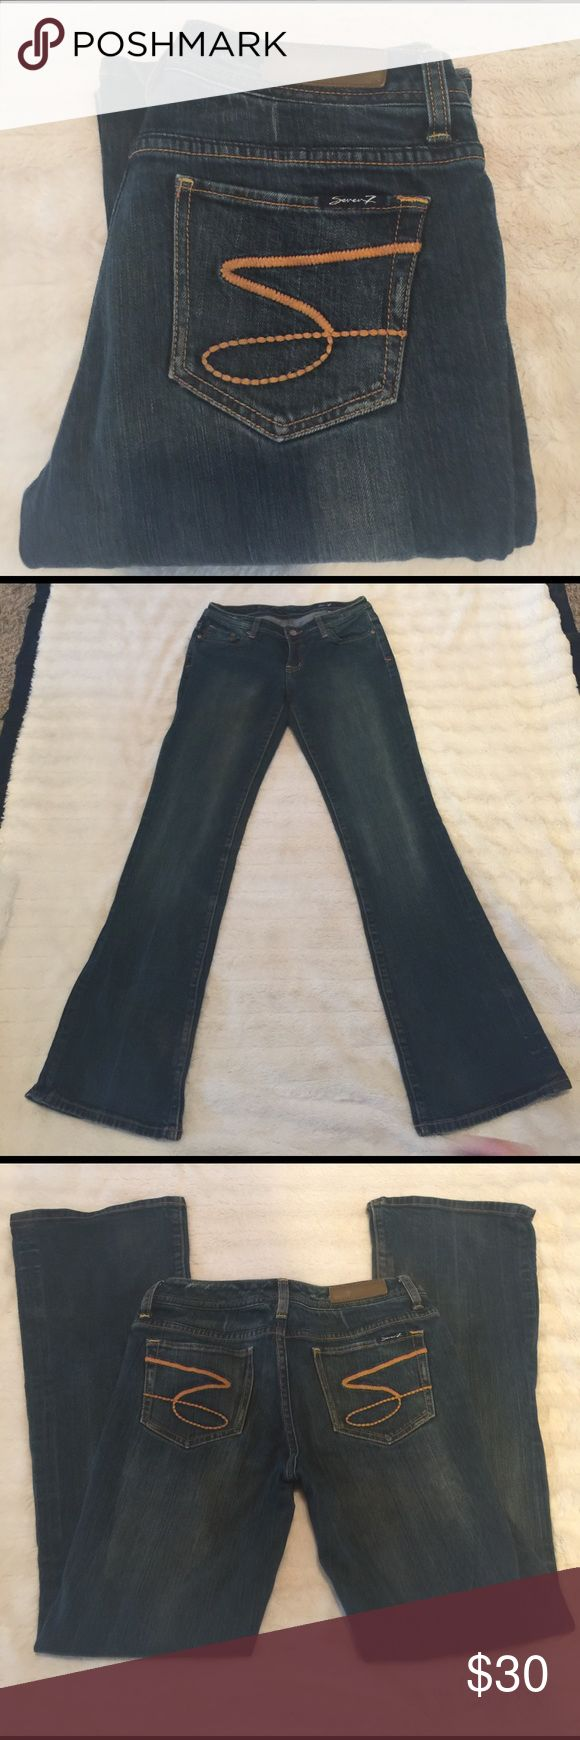 Seven7 Jeans🌟 Seven7 jeans in excellent condition! Inseam is 31, thanks for looking 😊 Seven7 Jeans Boot Cut